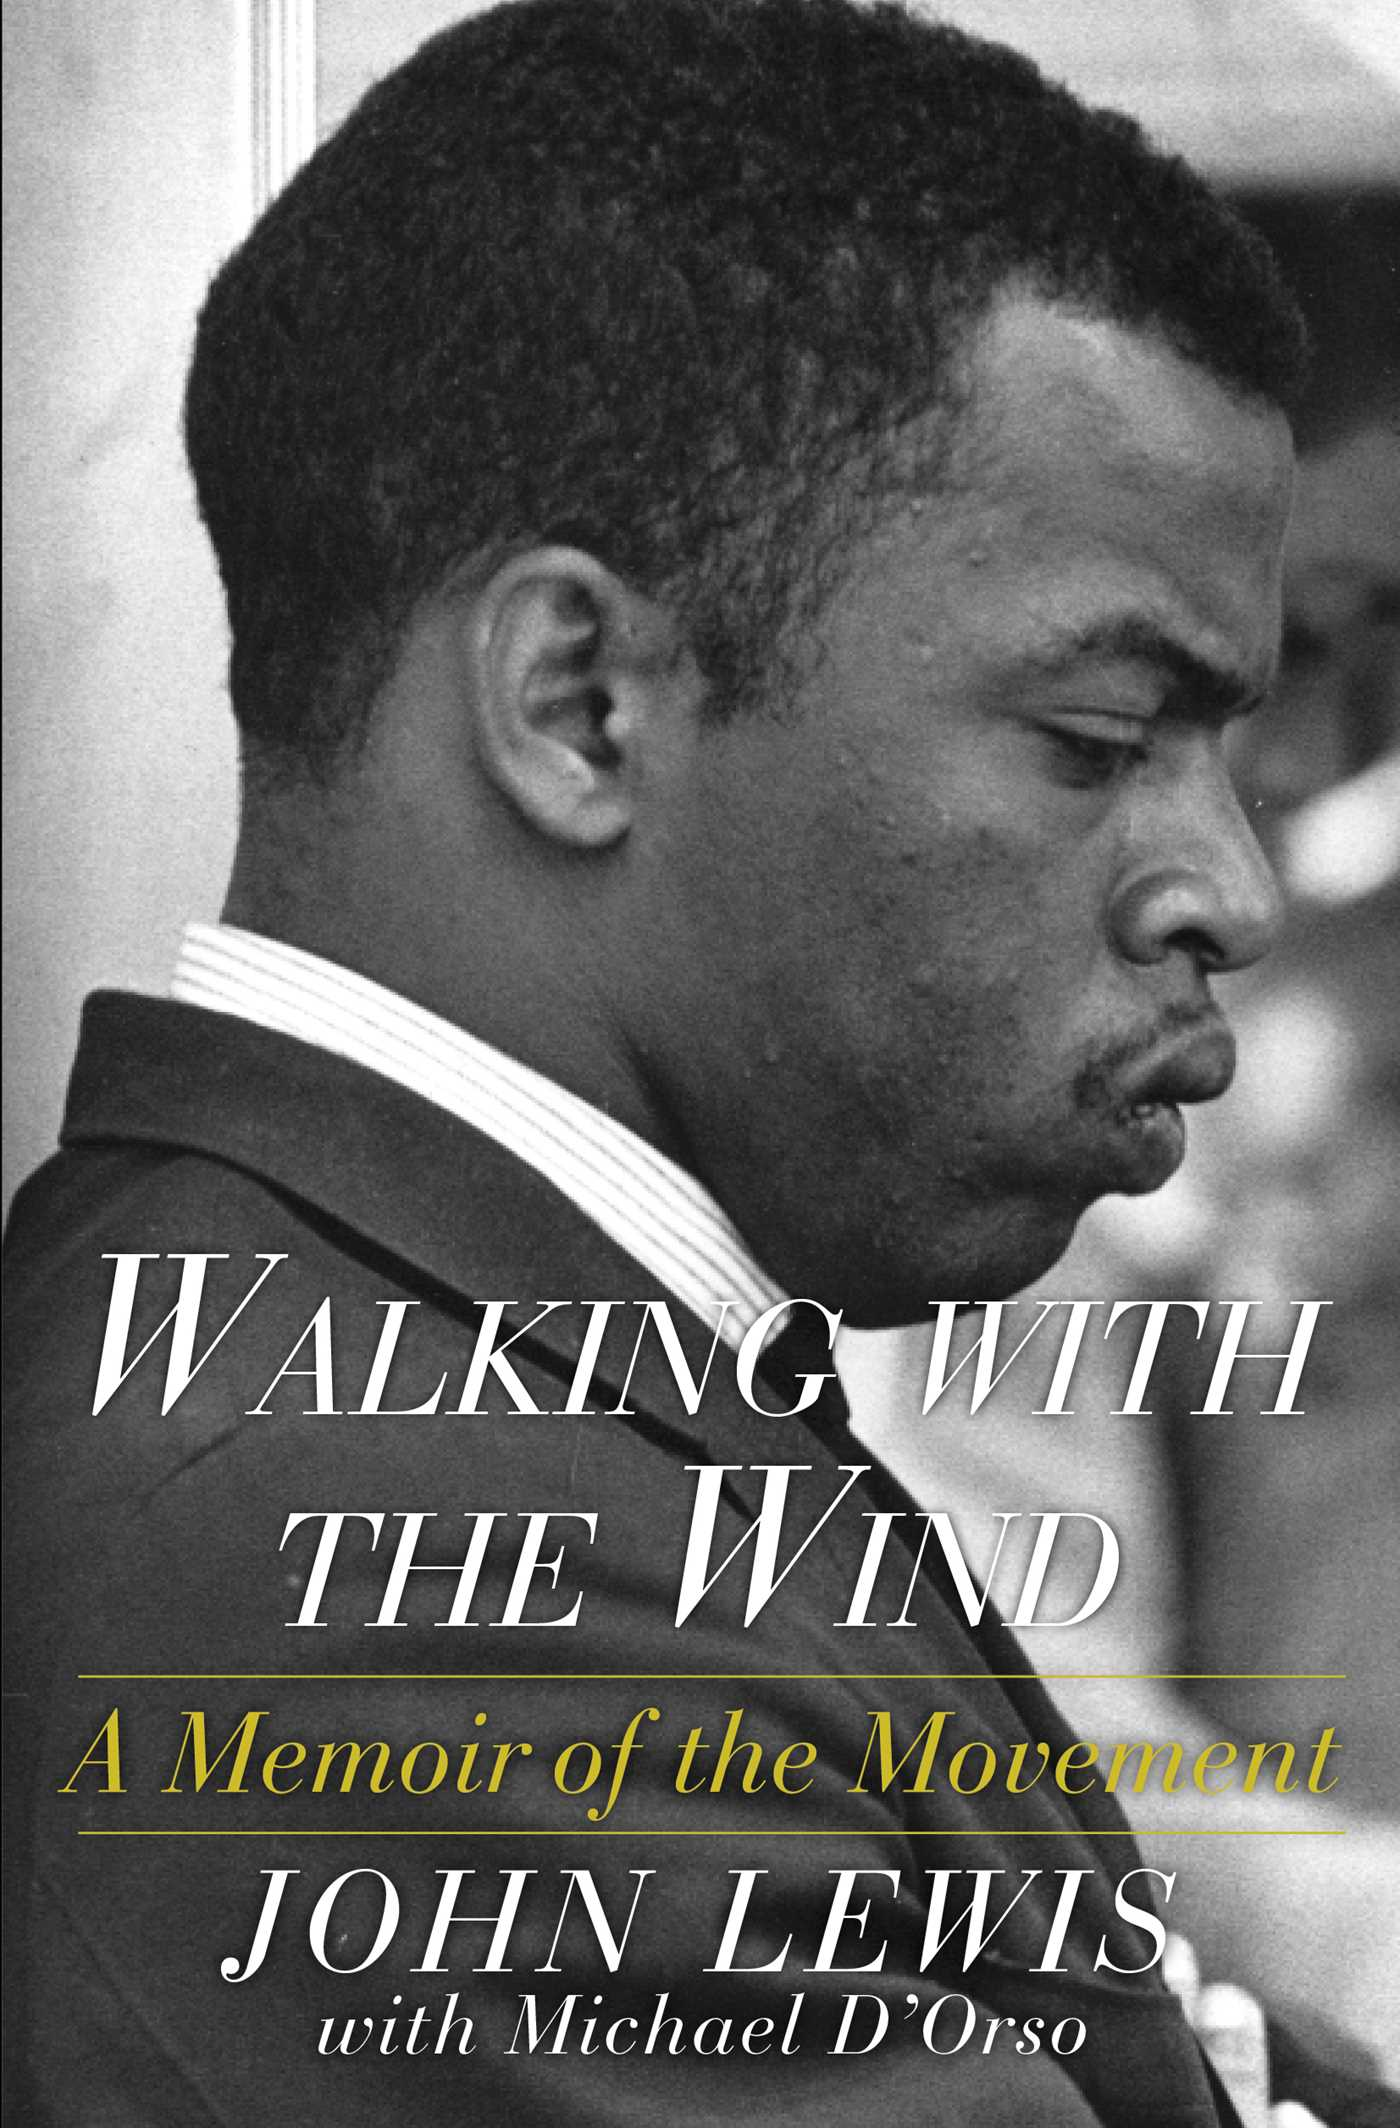 significant books on civil rights for martin luther king jr 2016 01 14 1452806617 5725481 walking thewind jpg